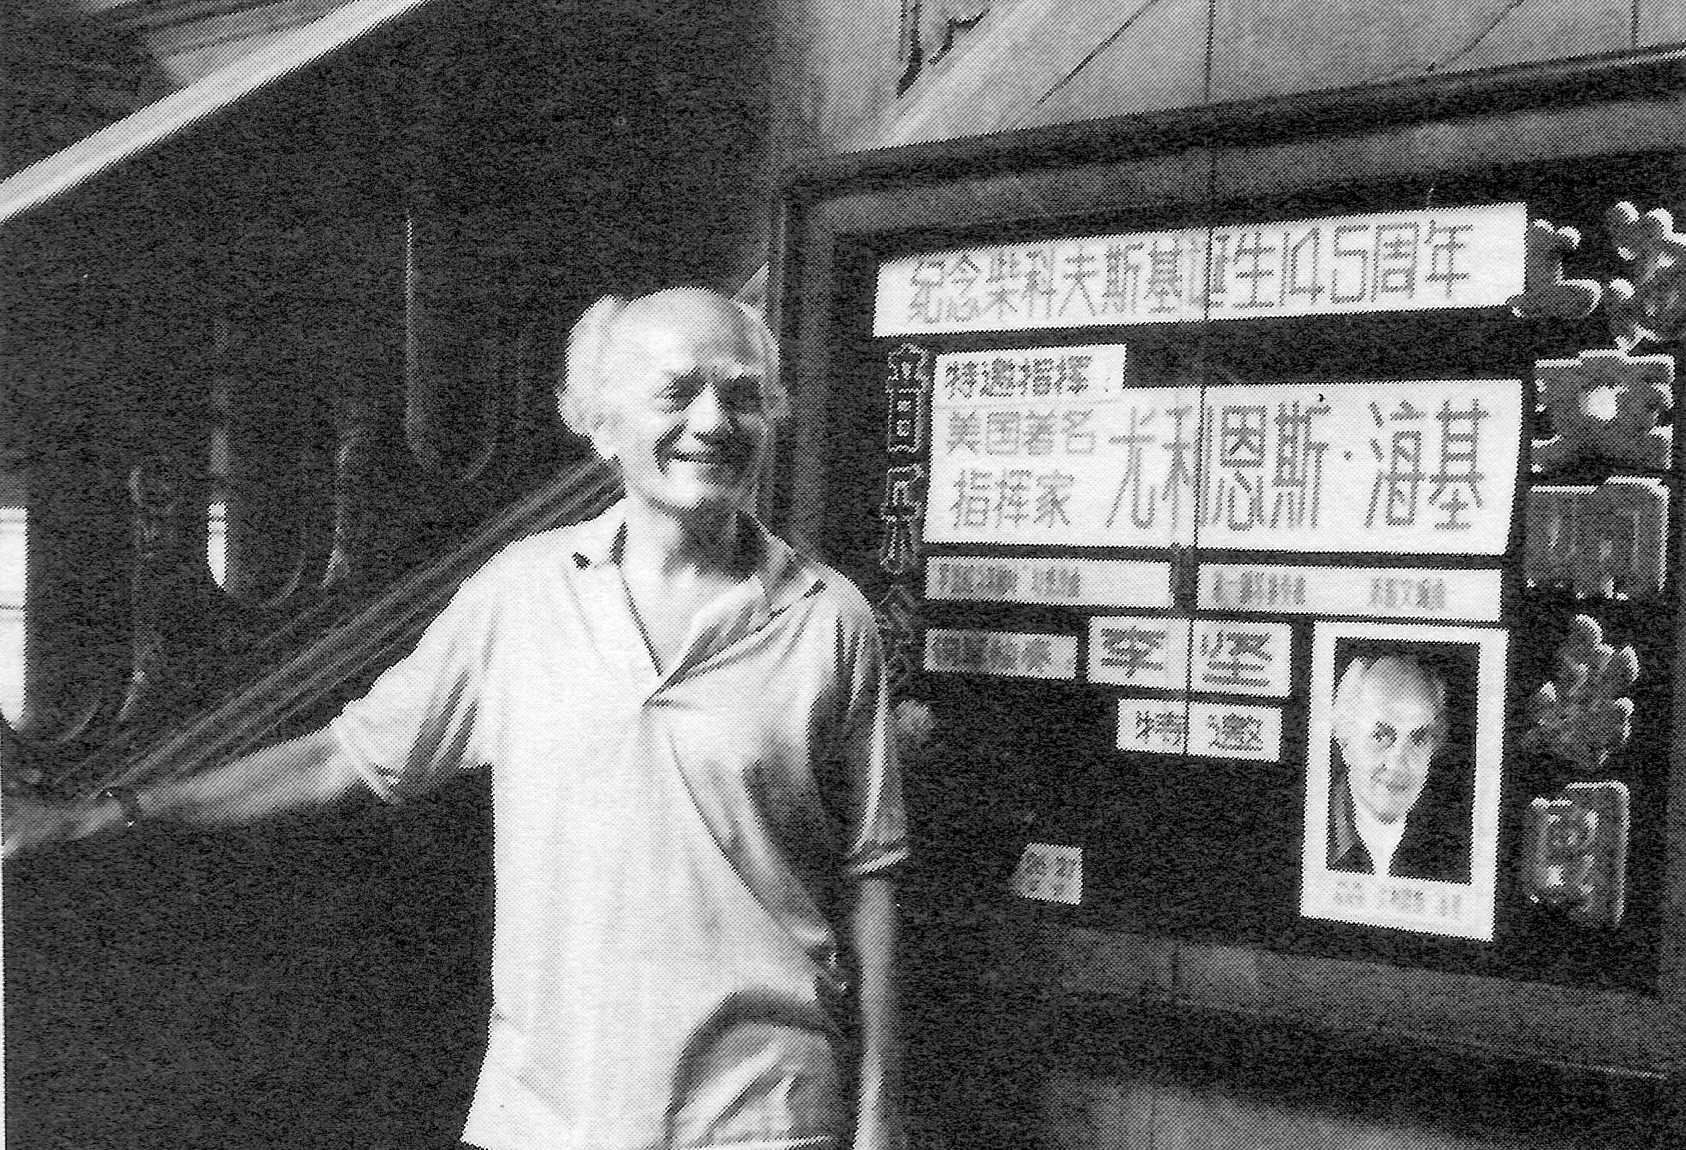 Julius Hegyi in front of Shanghai Symphony publicity announcing an all-Tchaikovsky program featuring pianist Li Jian, and conducted hy Hegyi